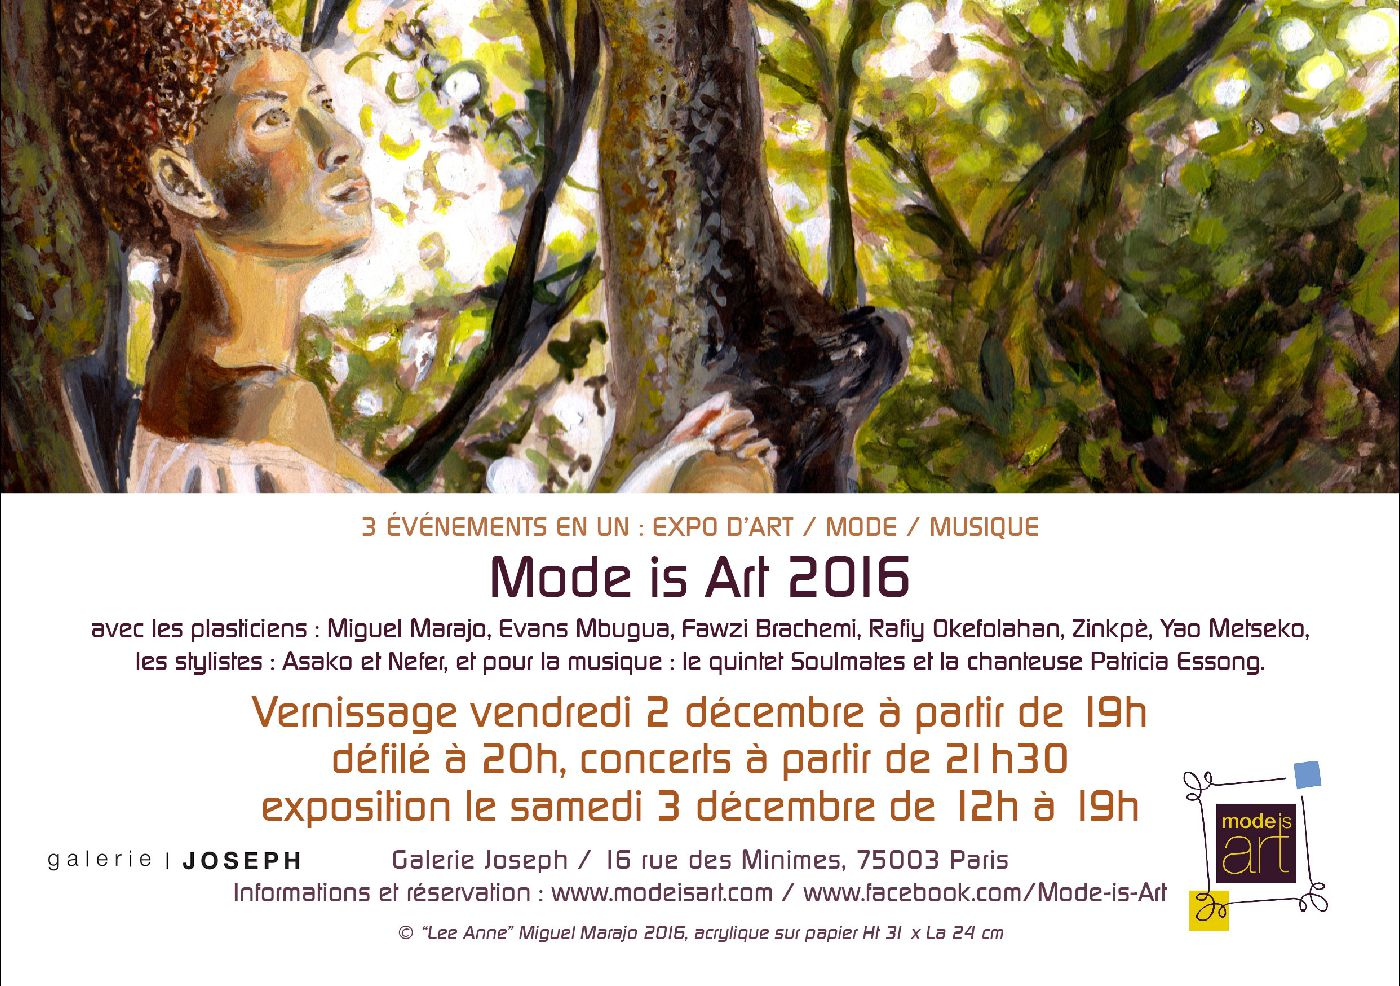 Miguel Marajo participe à Mode is Art 2016 / Paris